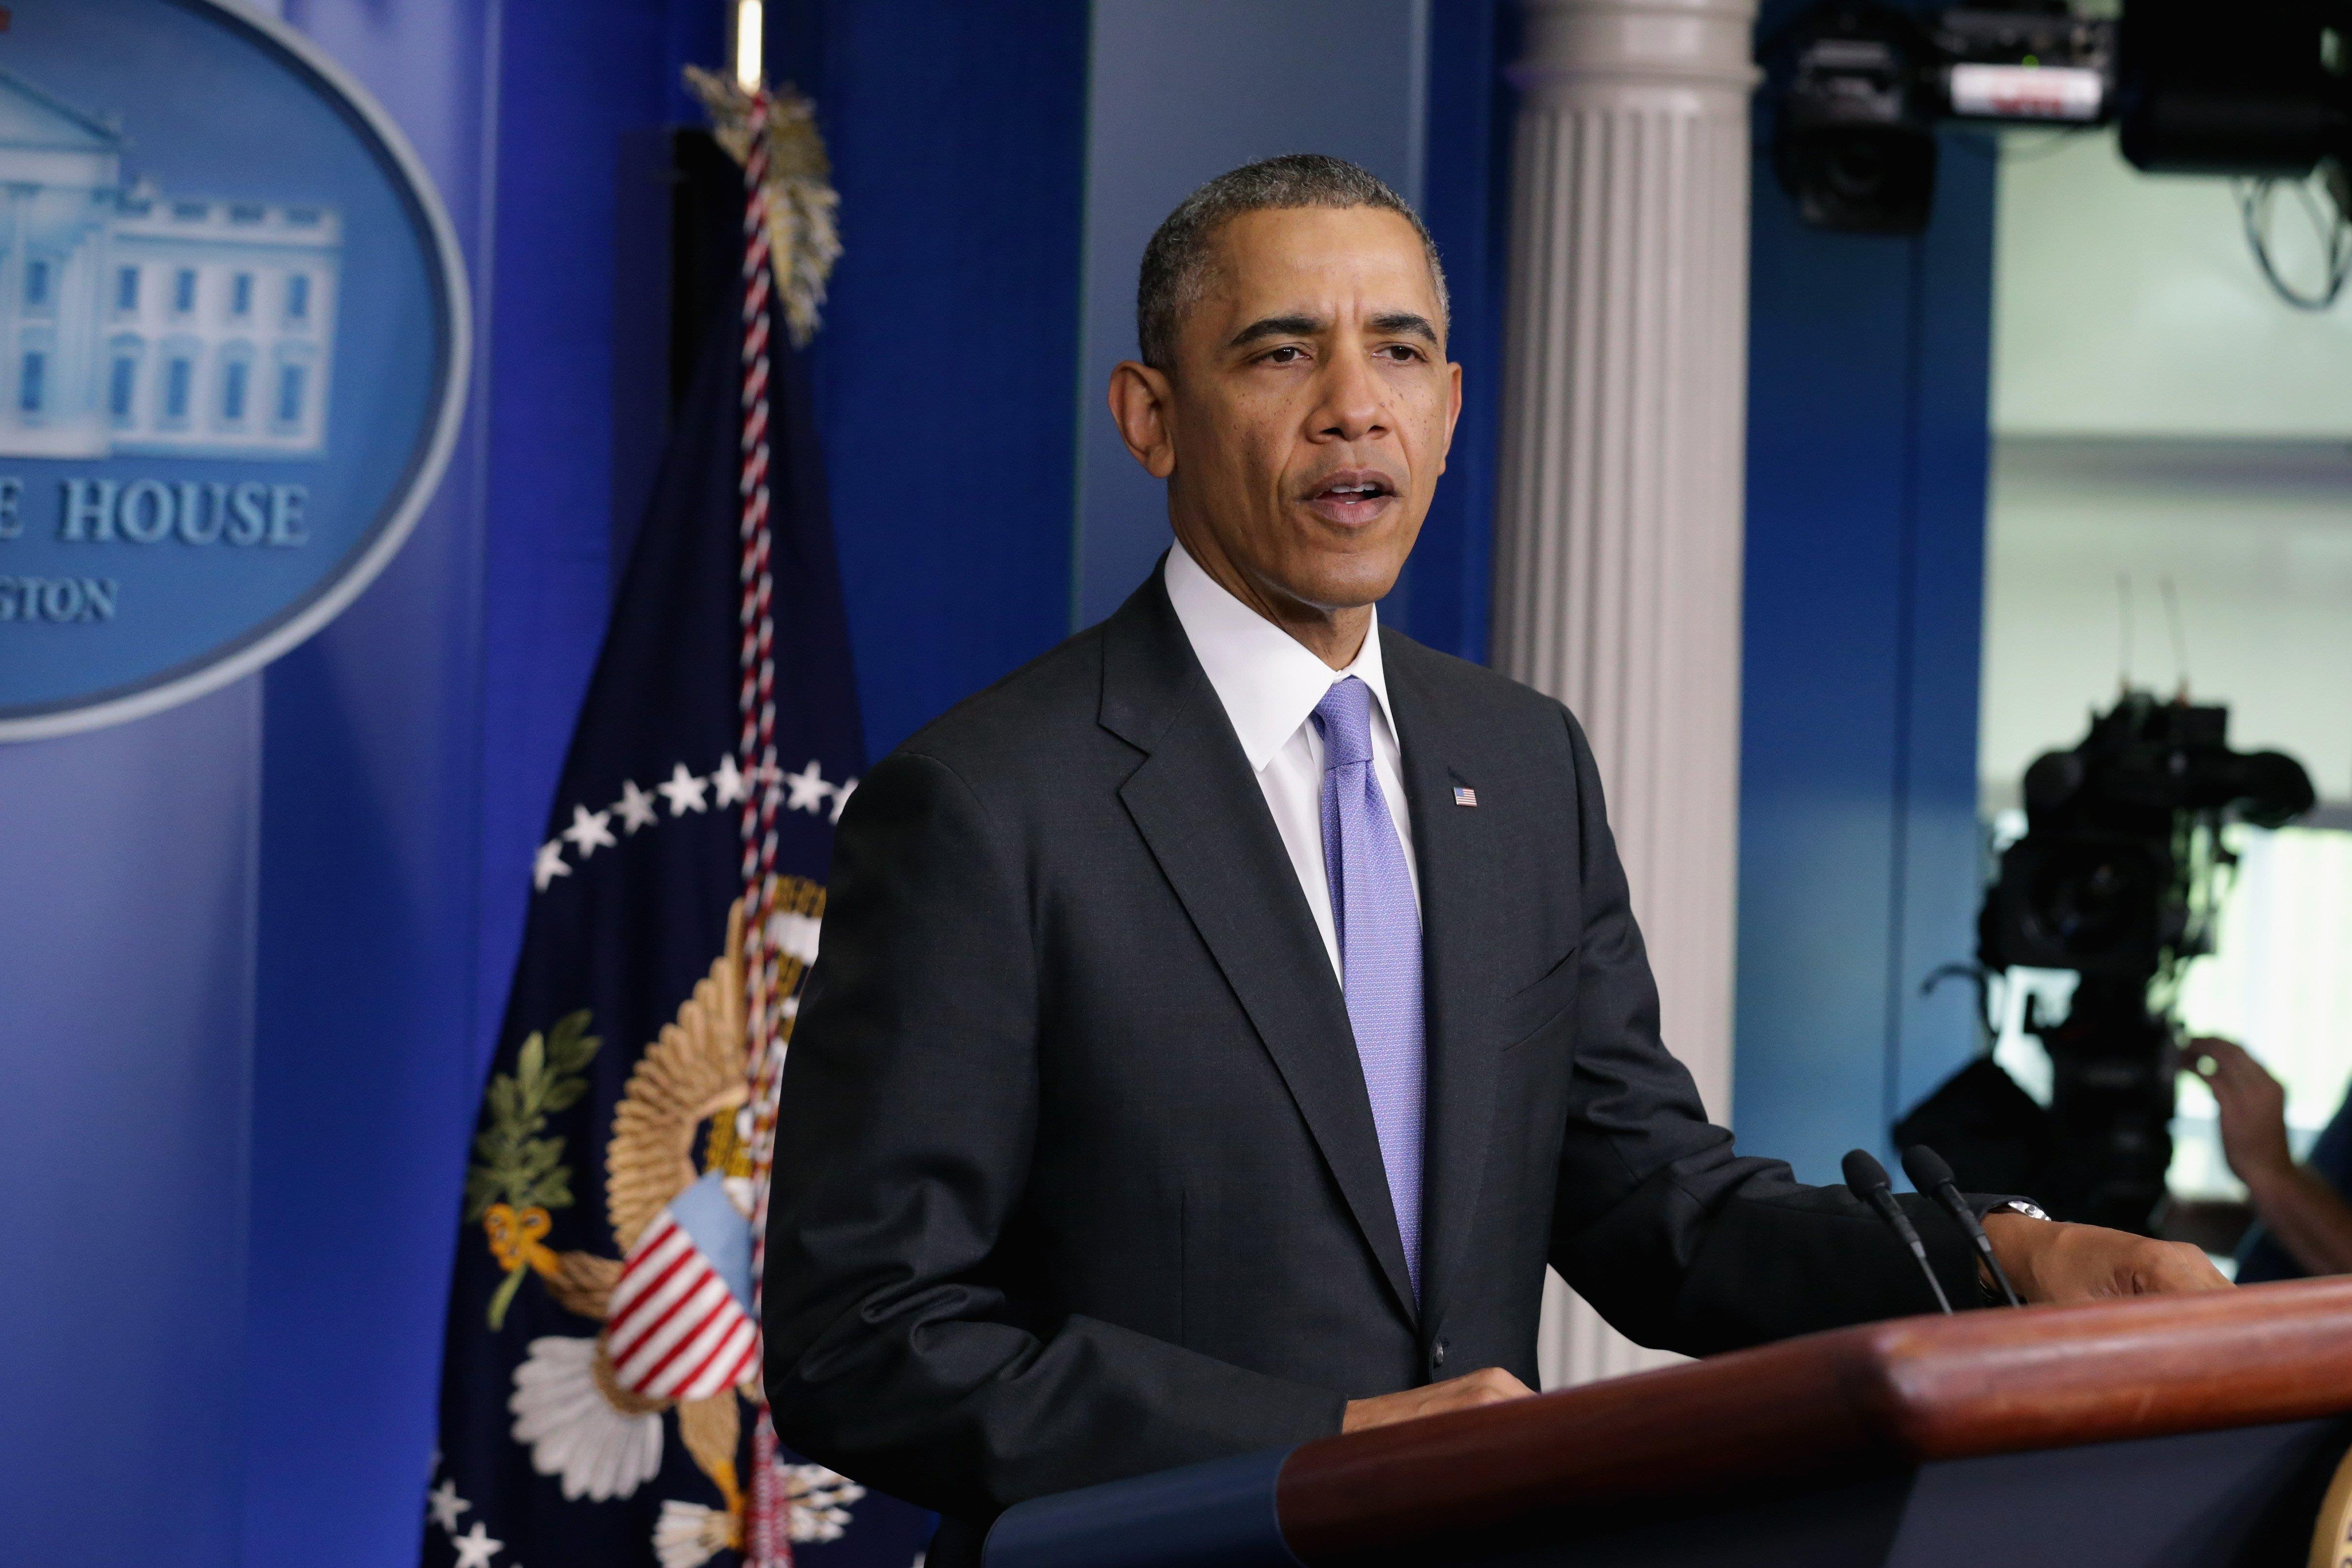 Image: President Obama Delivers Statement On Veterans Affairs Scandal